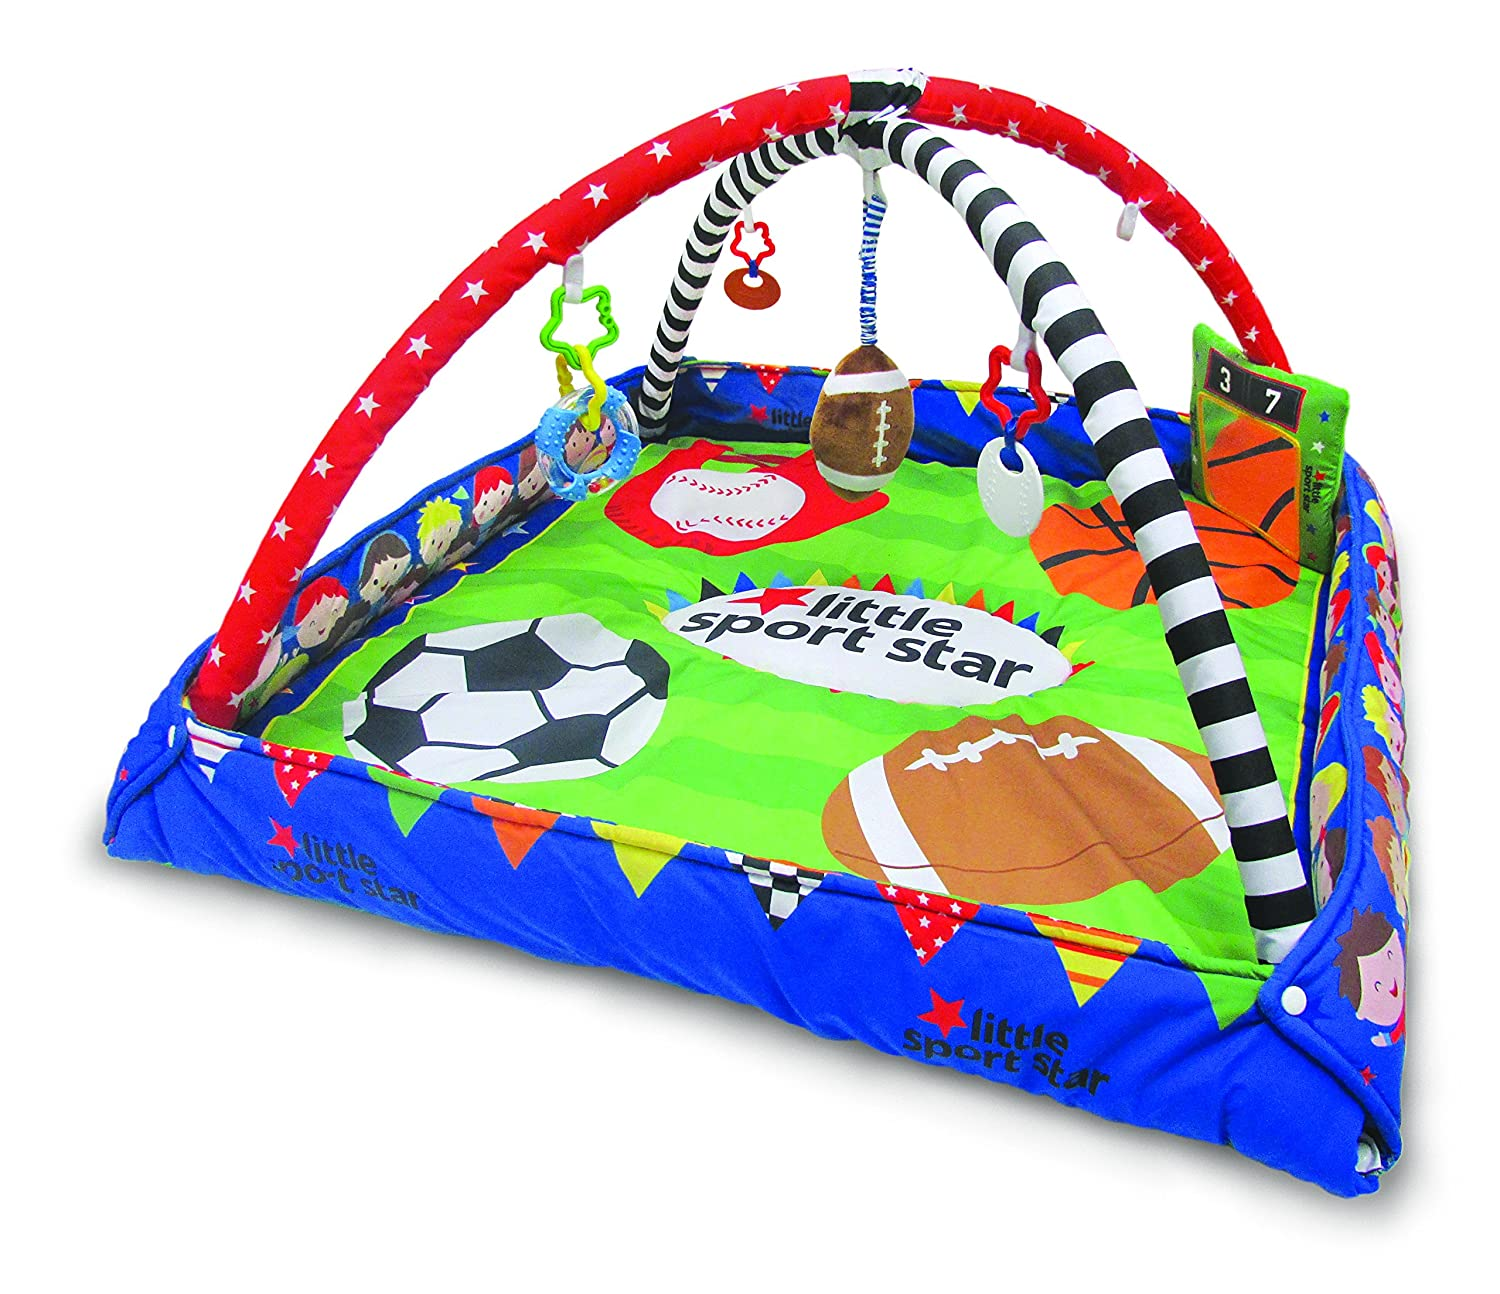 Little Sport Star All Sports Play Gym